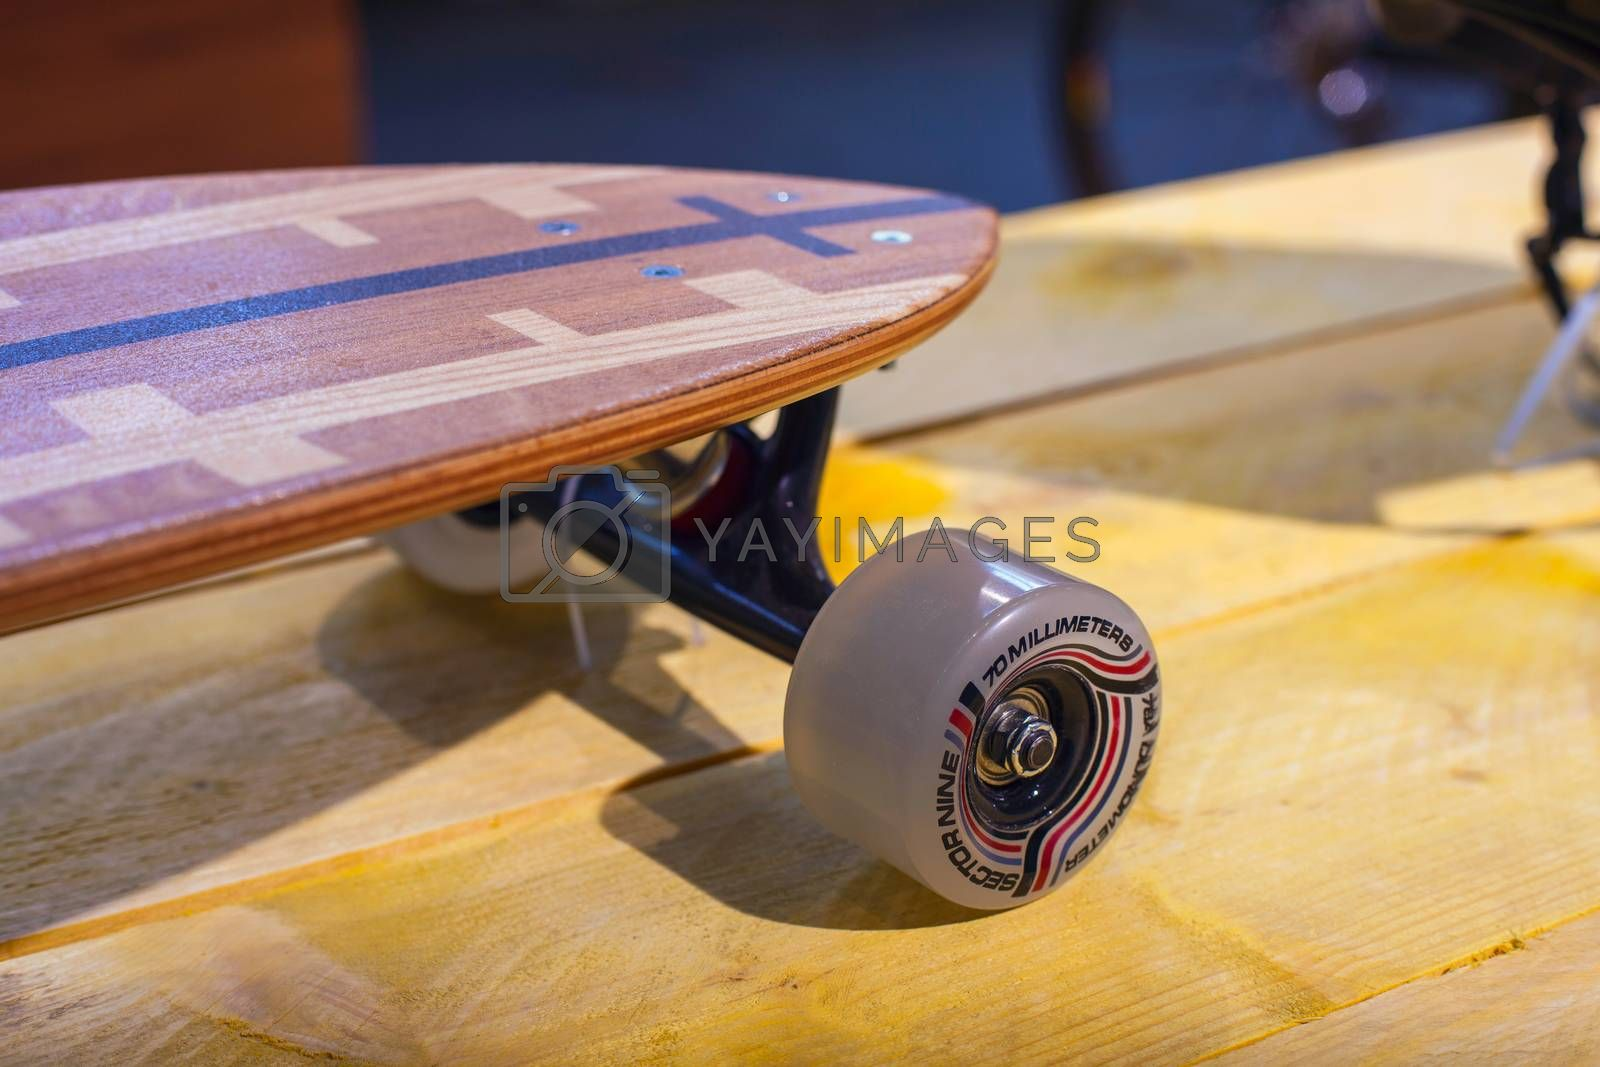 MILAN, ITALY - APRIL 16: Close up of skateboard at Tortona space location of important events during Milan Design week on April 16, 2015